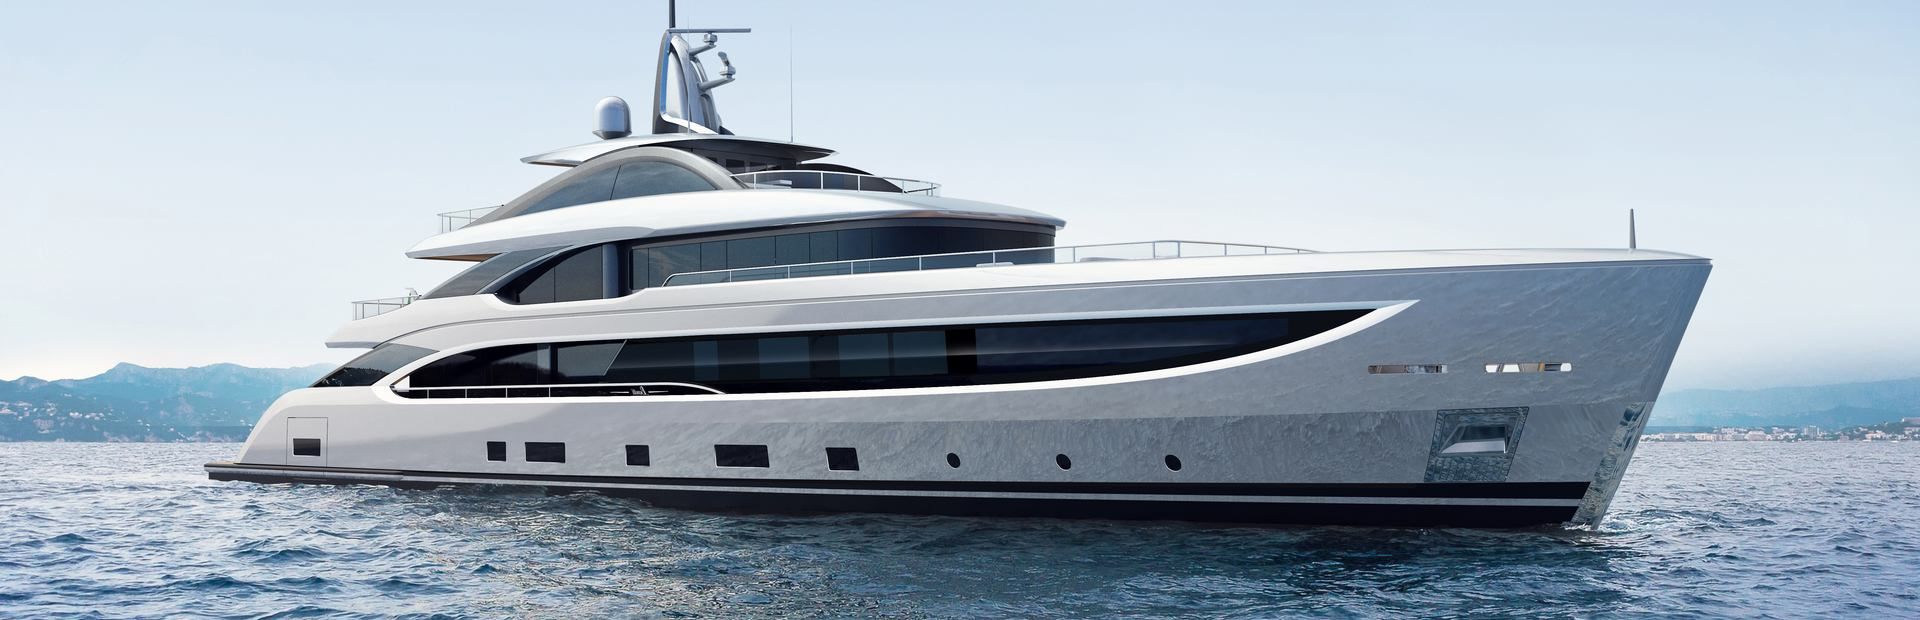 B.Now 50M Yacht Charter